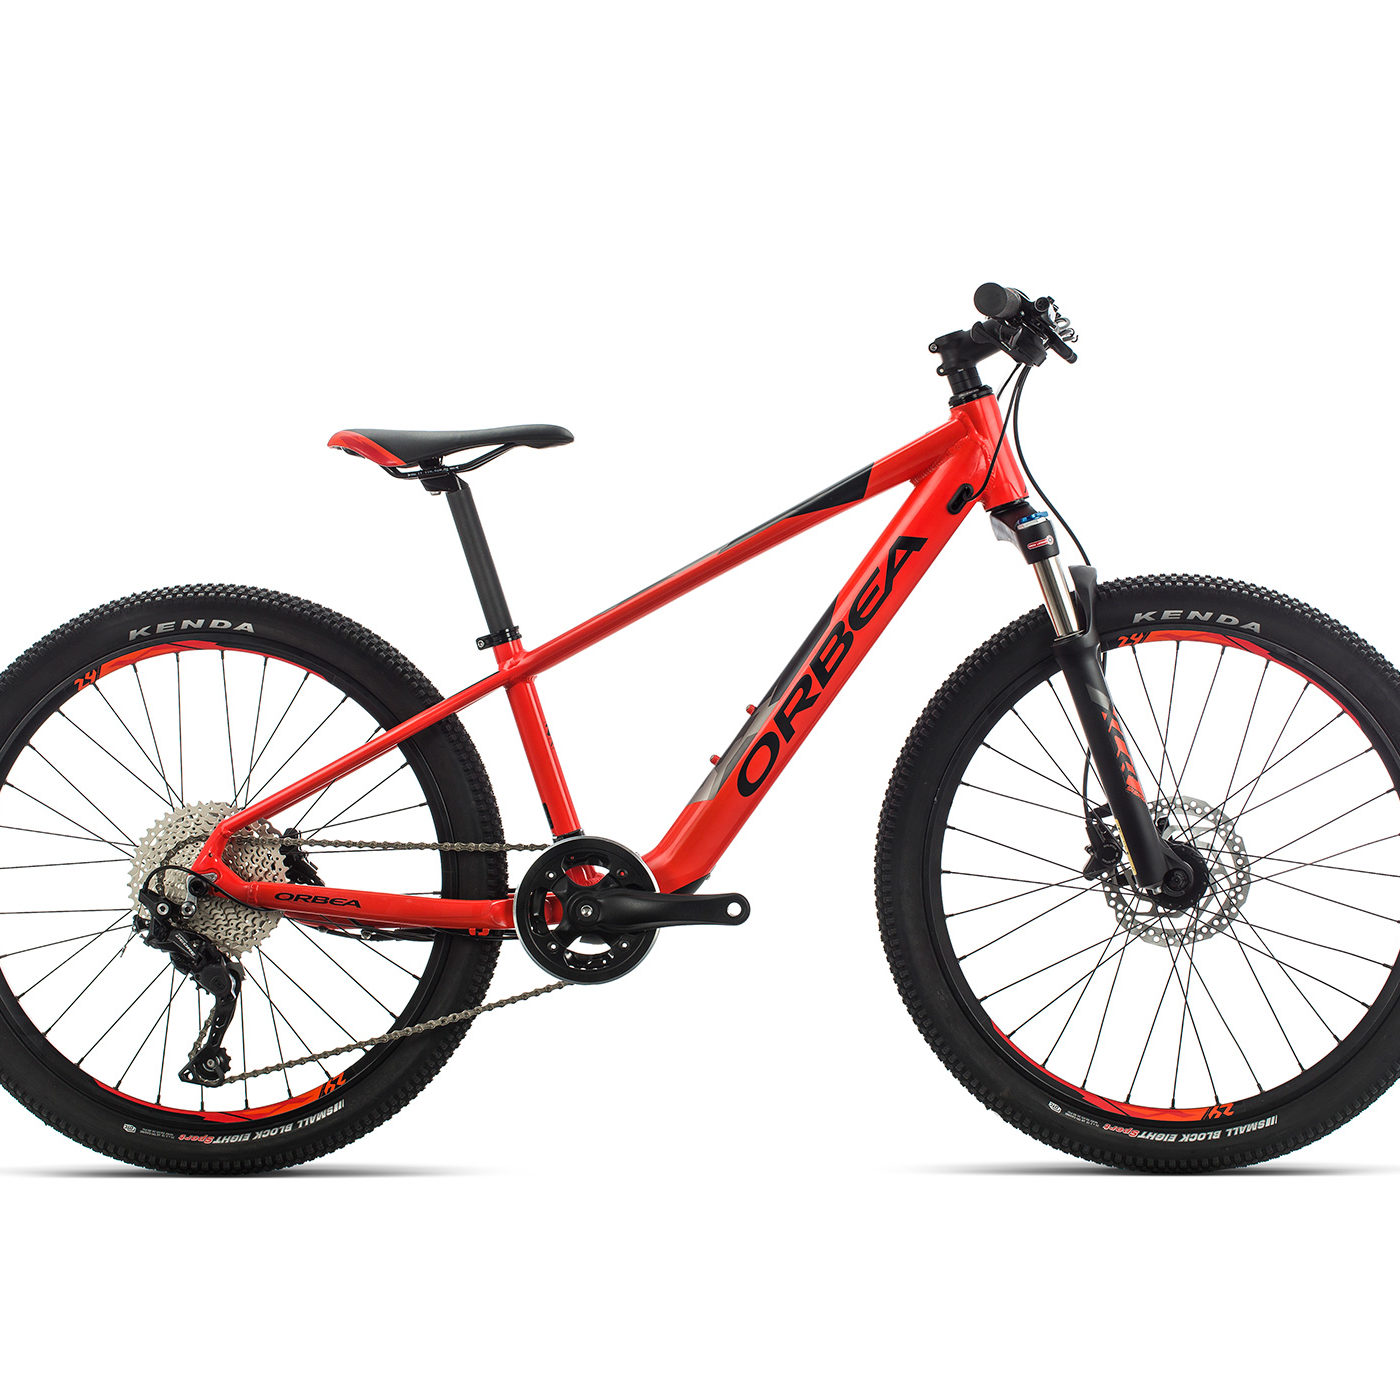 ORBEA E-MX 24 KIDS EBIKE BRIGHT RED GLOSS ZWART MAT